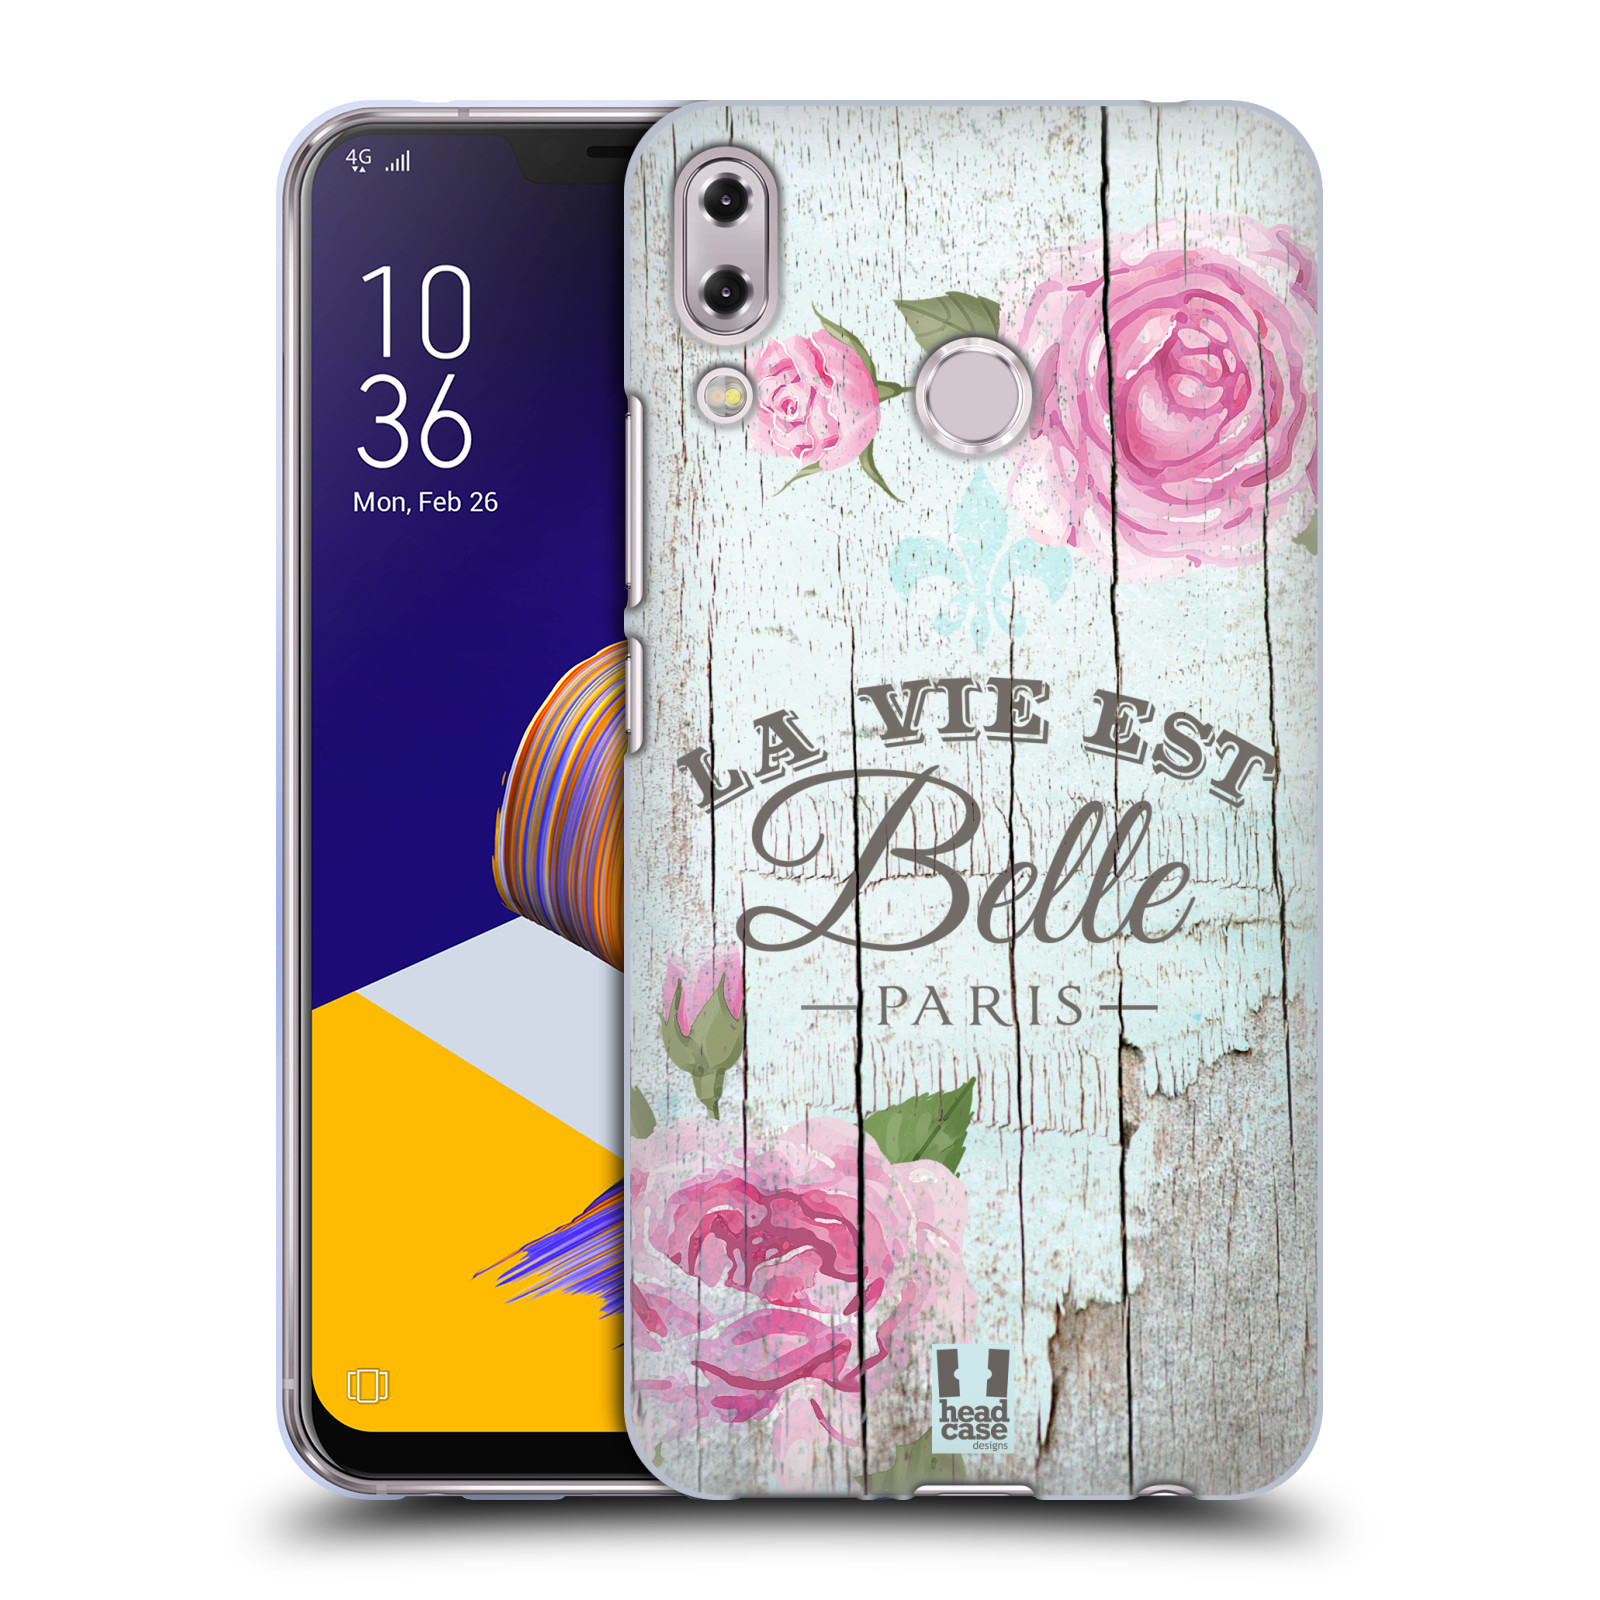 Silikonové pouzdro na mobil Asus ZenFone 5 ZE620KL - Head Case - LIFE IN THE COUNTRY BELLE